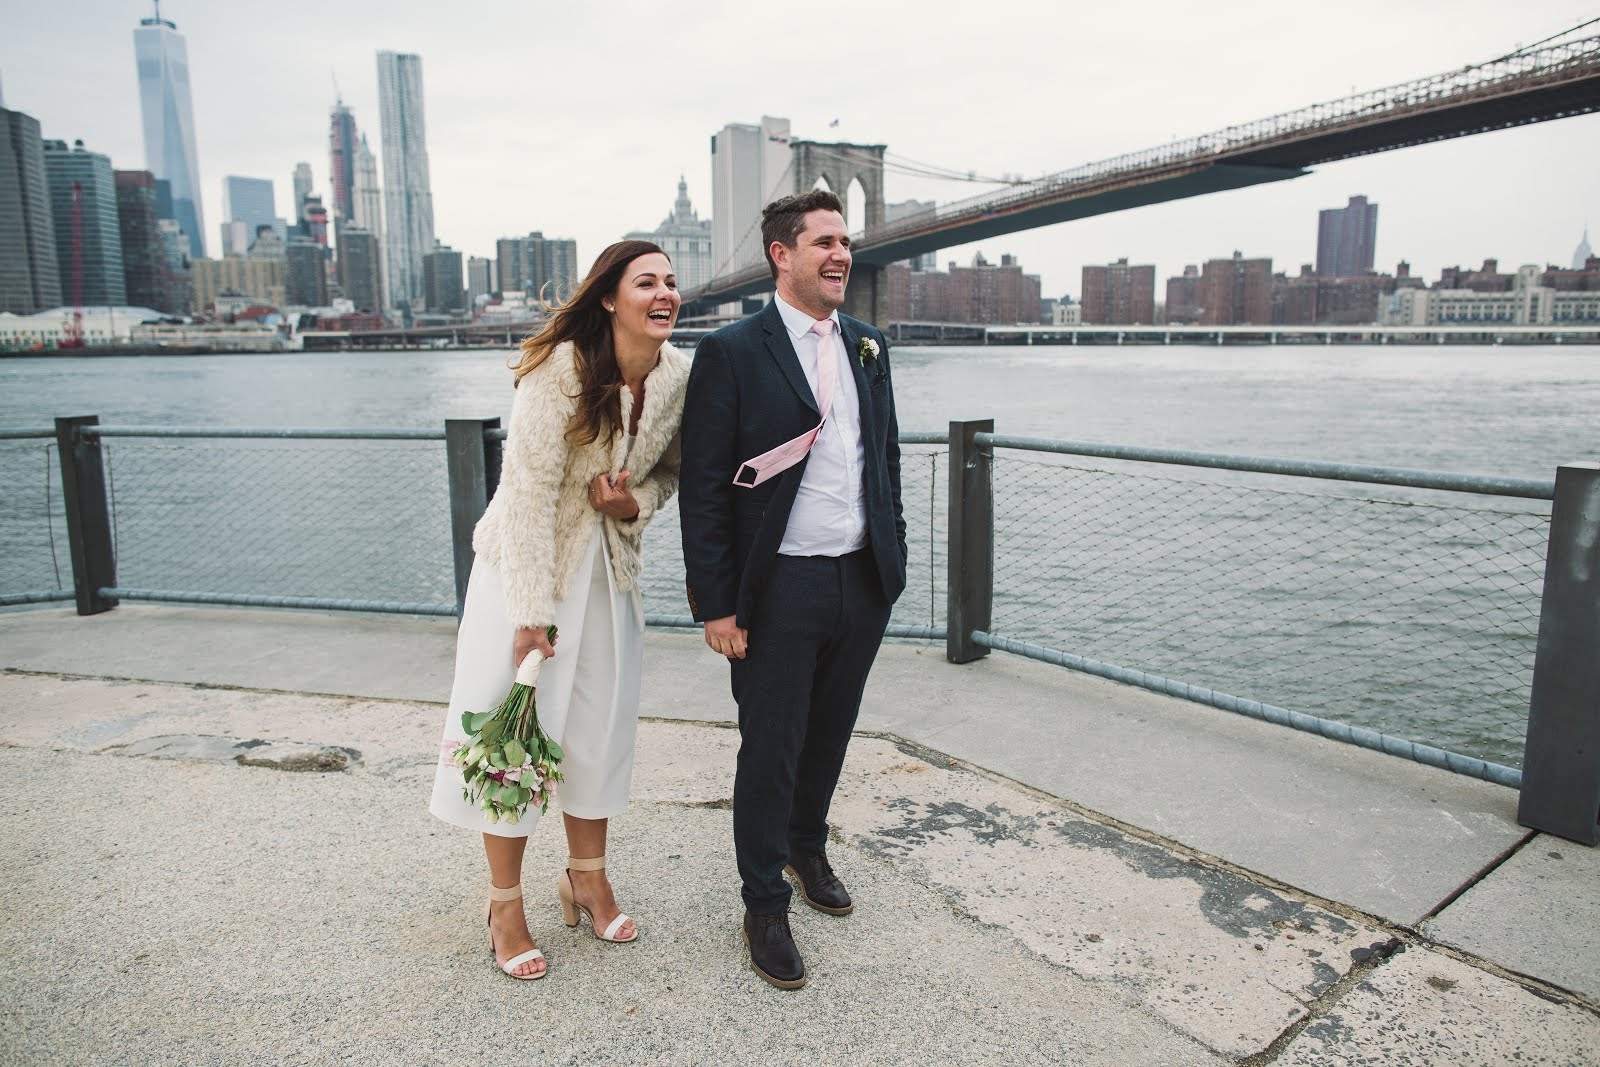 NYC City Hall Elopement | Documentary wedding photography by Cassie Castellaw